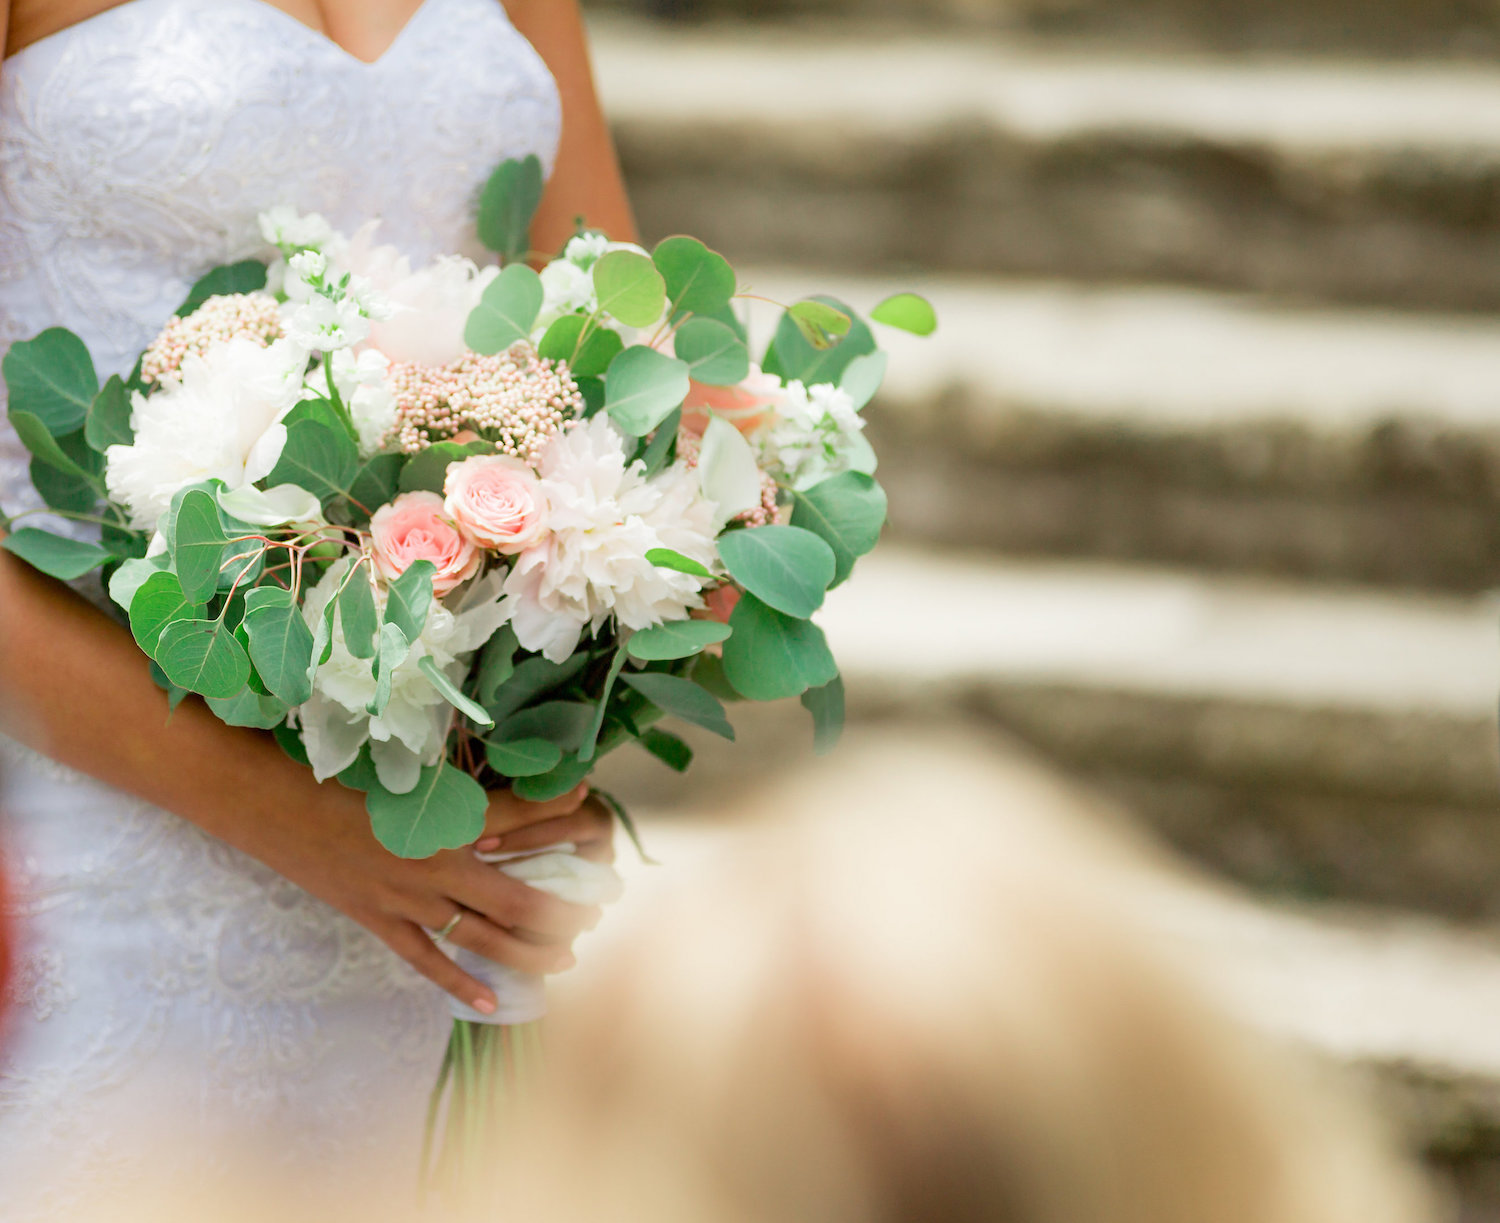 Bride's bouquet - white peonies, pink roses, eucalyptus